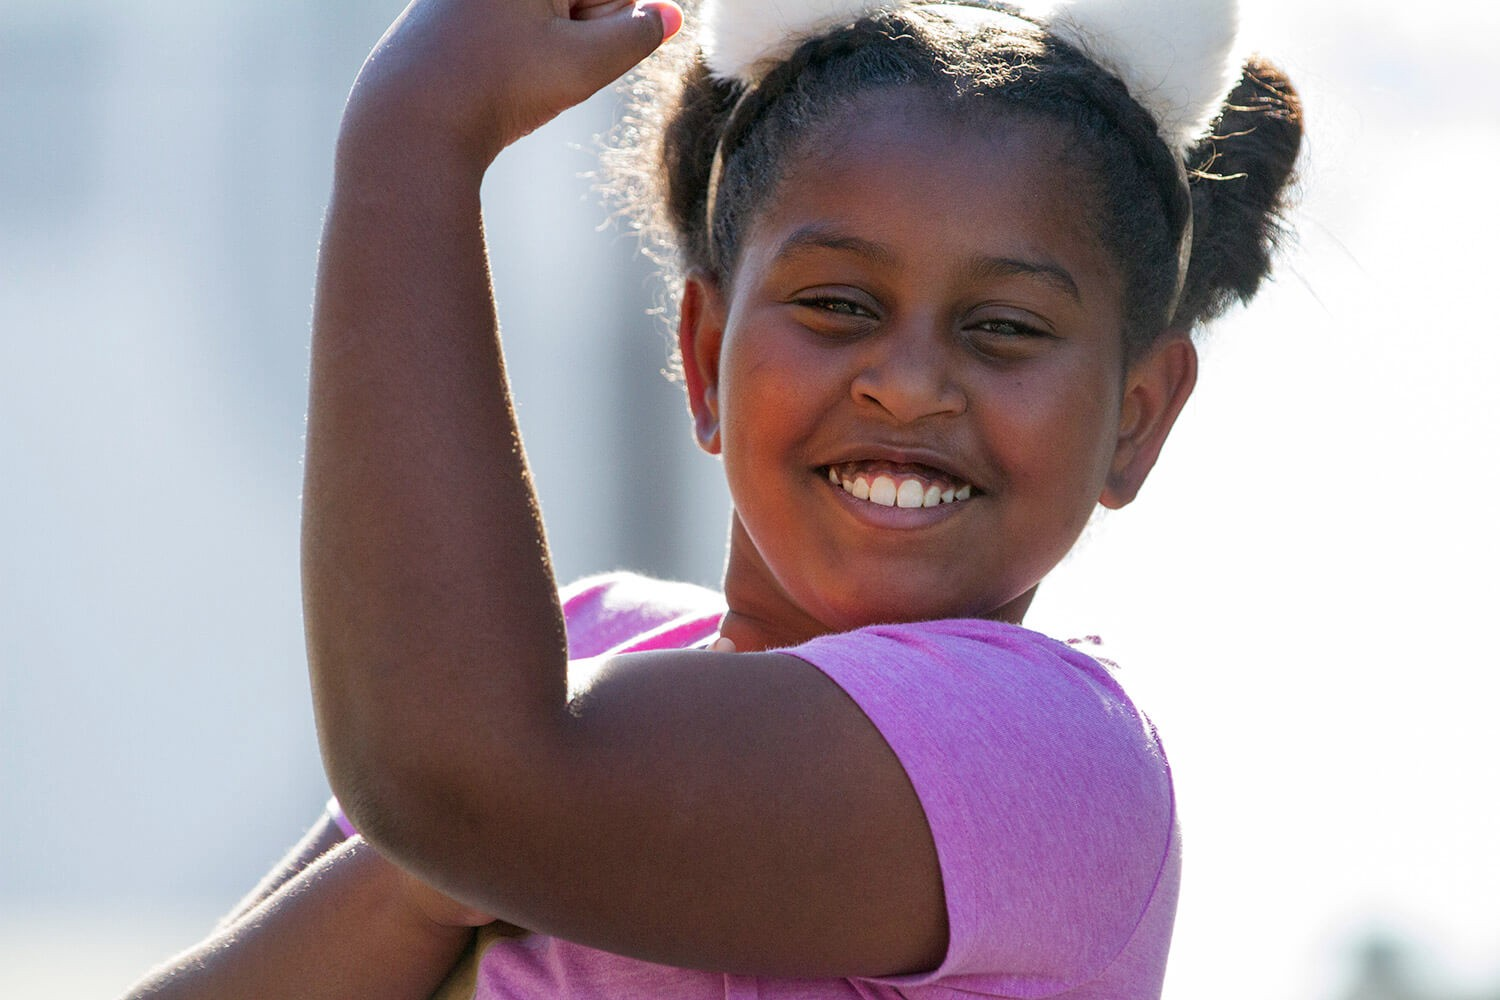 young girl wearing cat ears and holding up her arm to flex the muscle